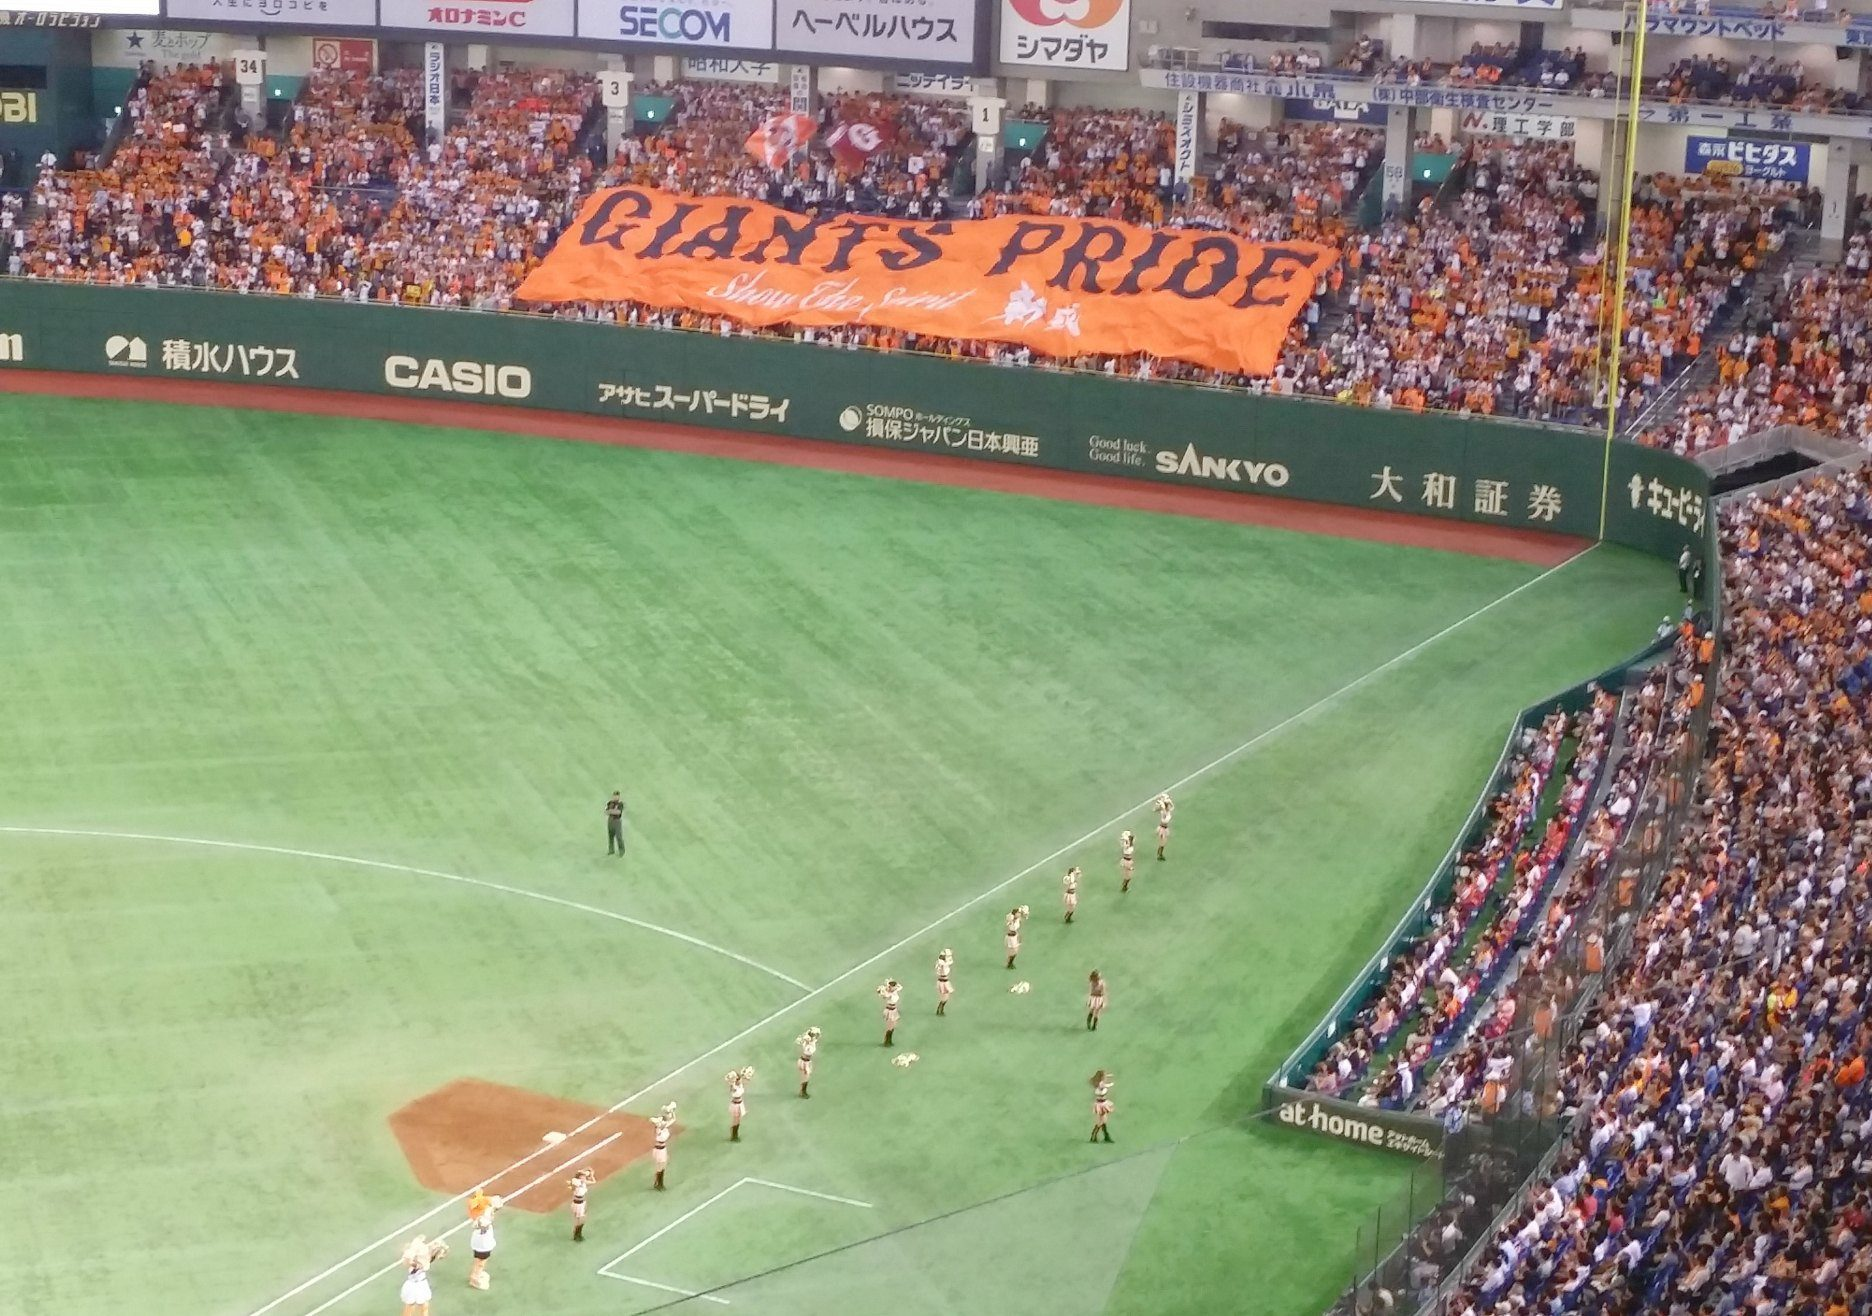 Yomiuri Giants Baseball in the Tokyo Dome